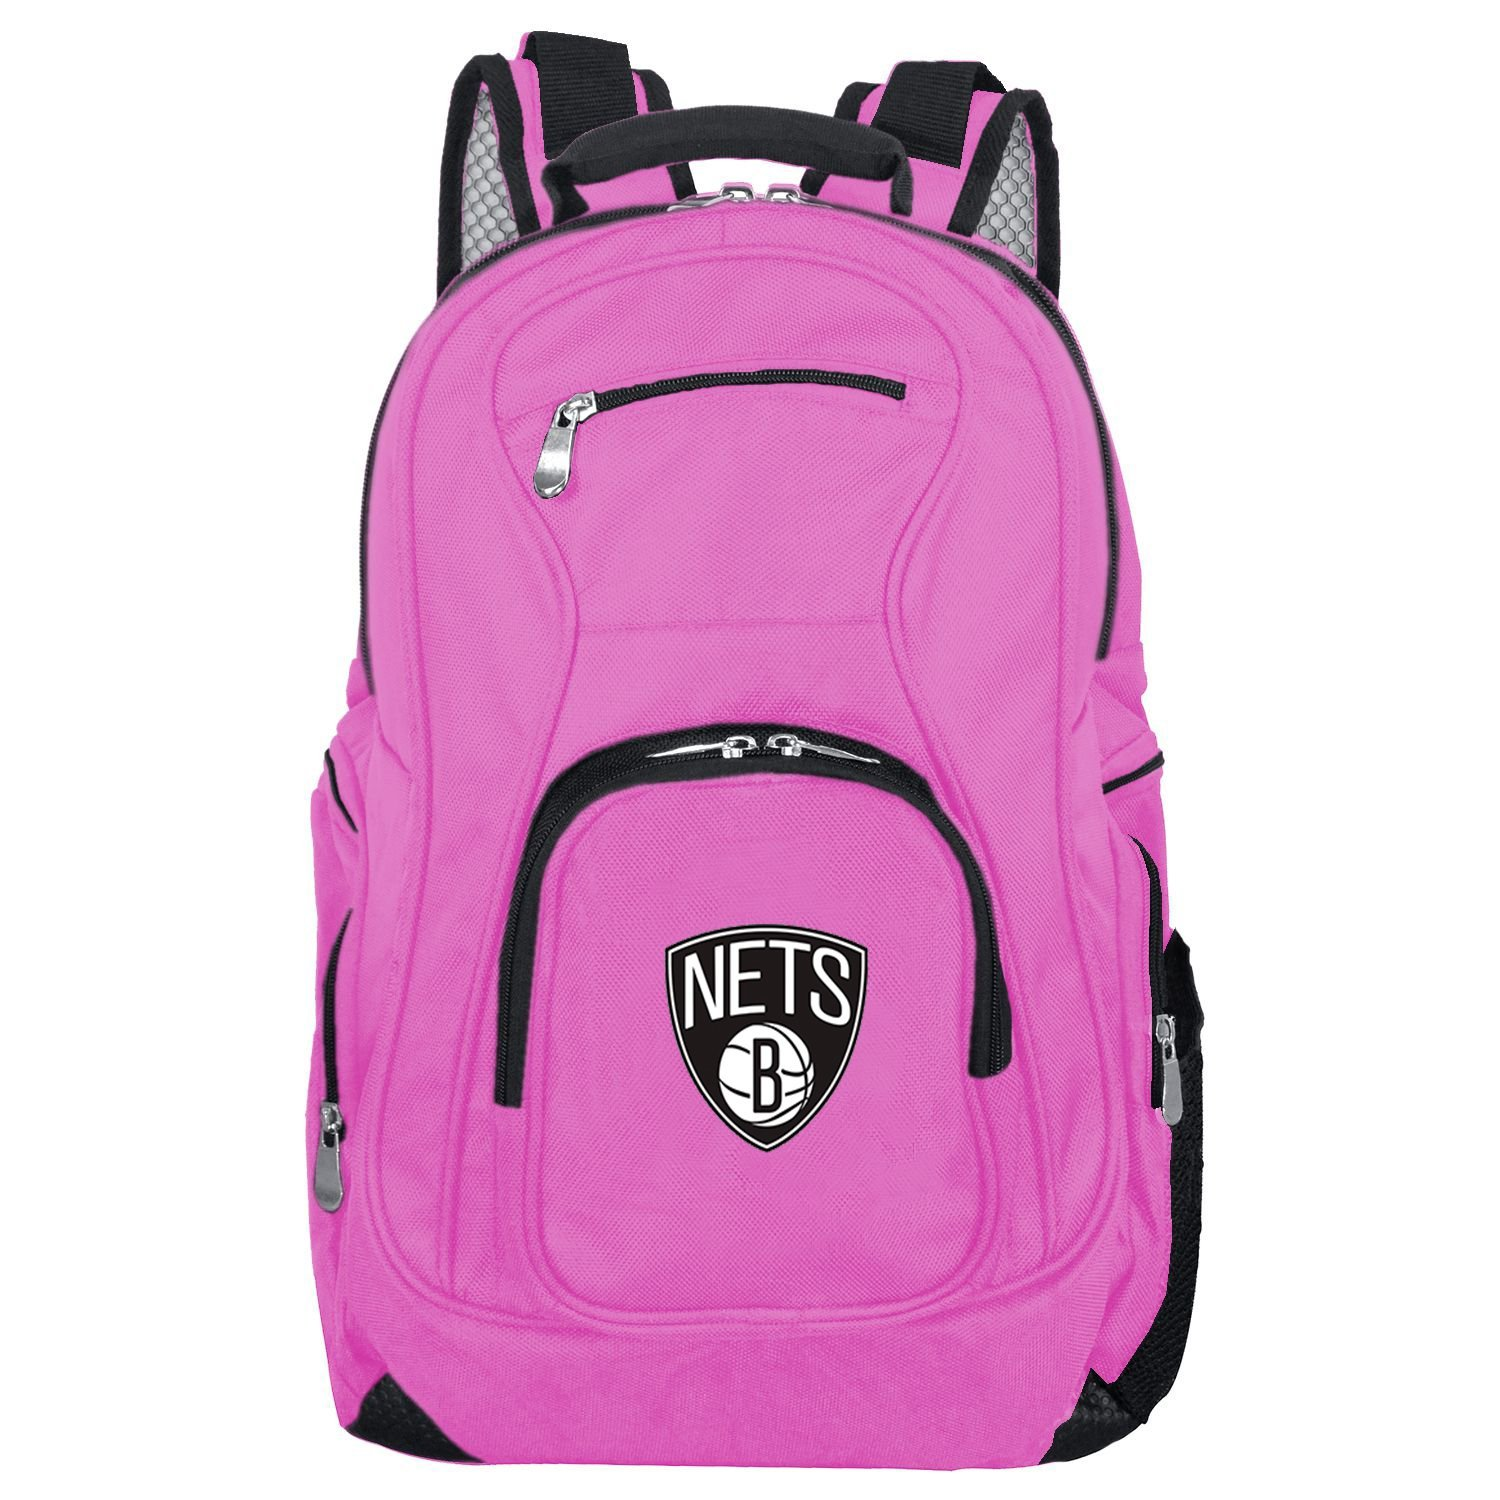 NBA Brooklyn Nets Voyager Laptop Backpack, 19-inches, Pink